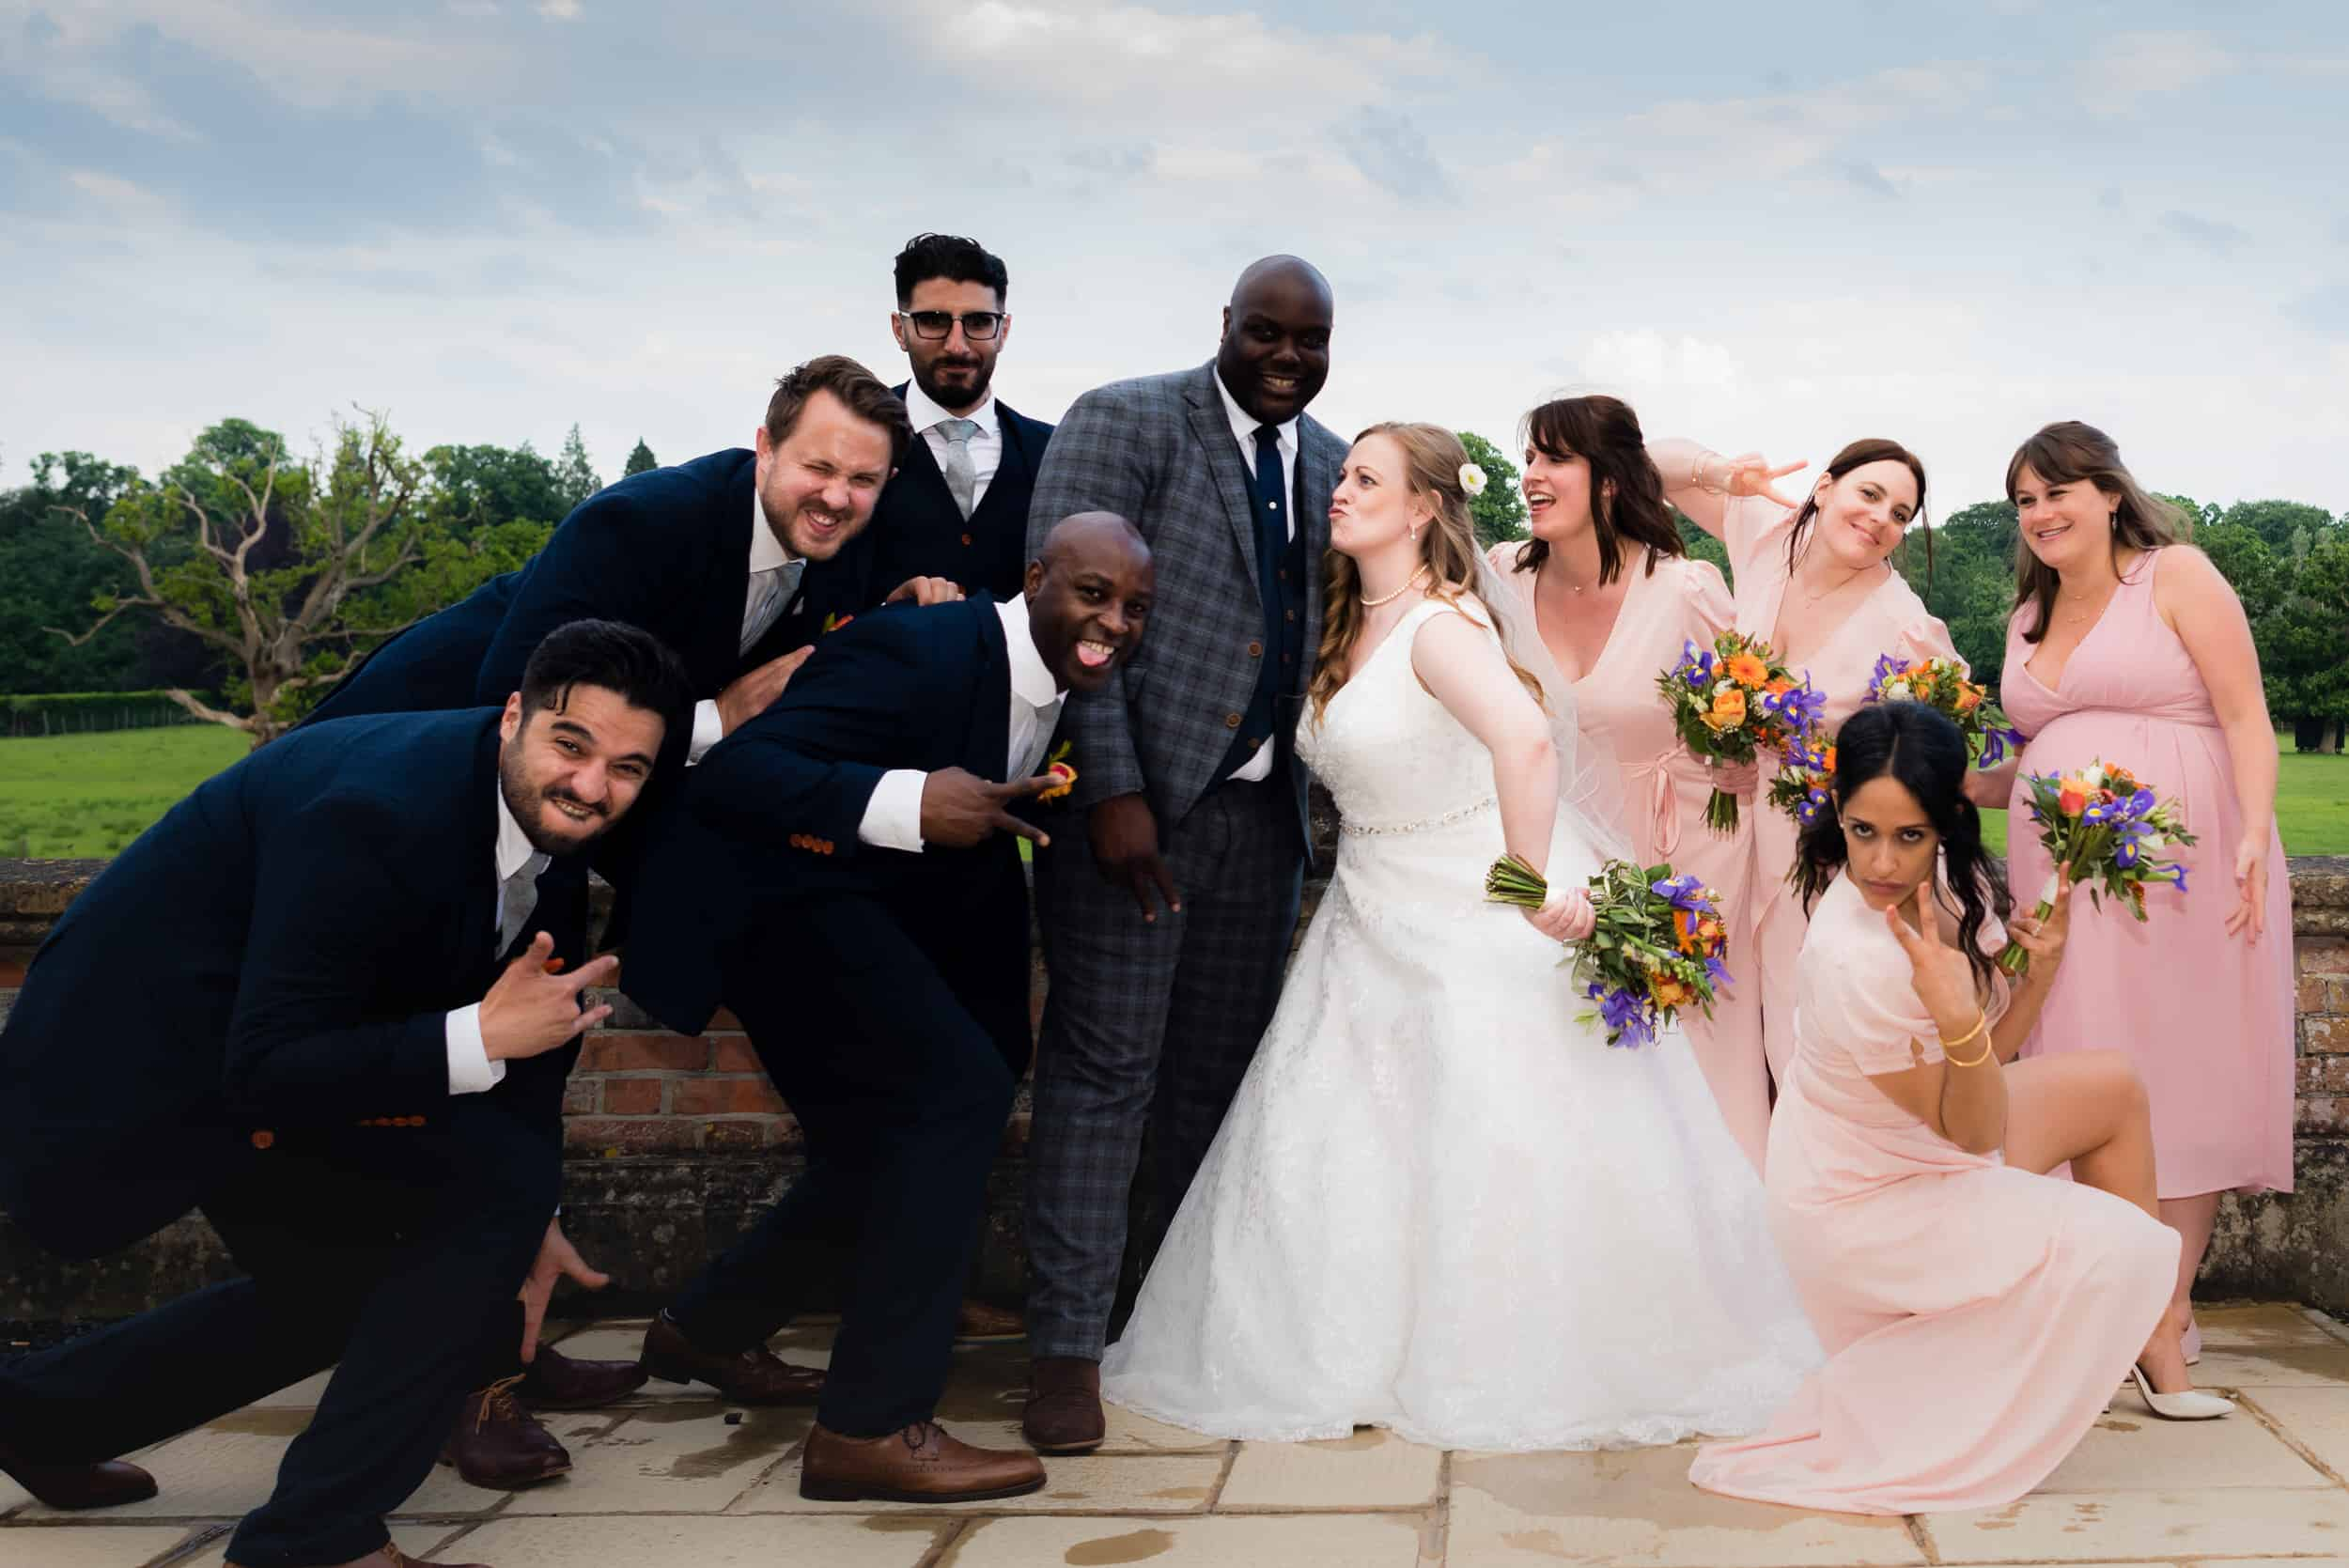 wedding at Burley manor hotel and spa in the new forest. having fun, laughing and relaxed photography